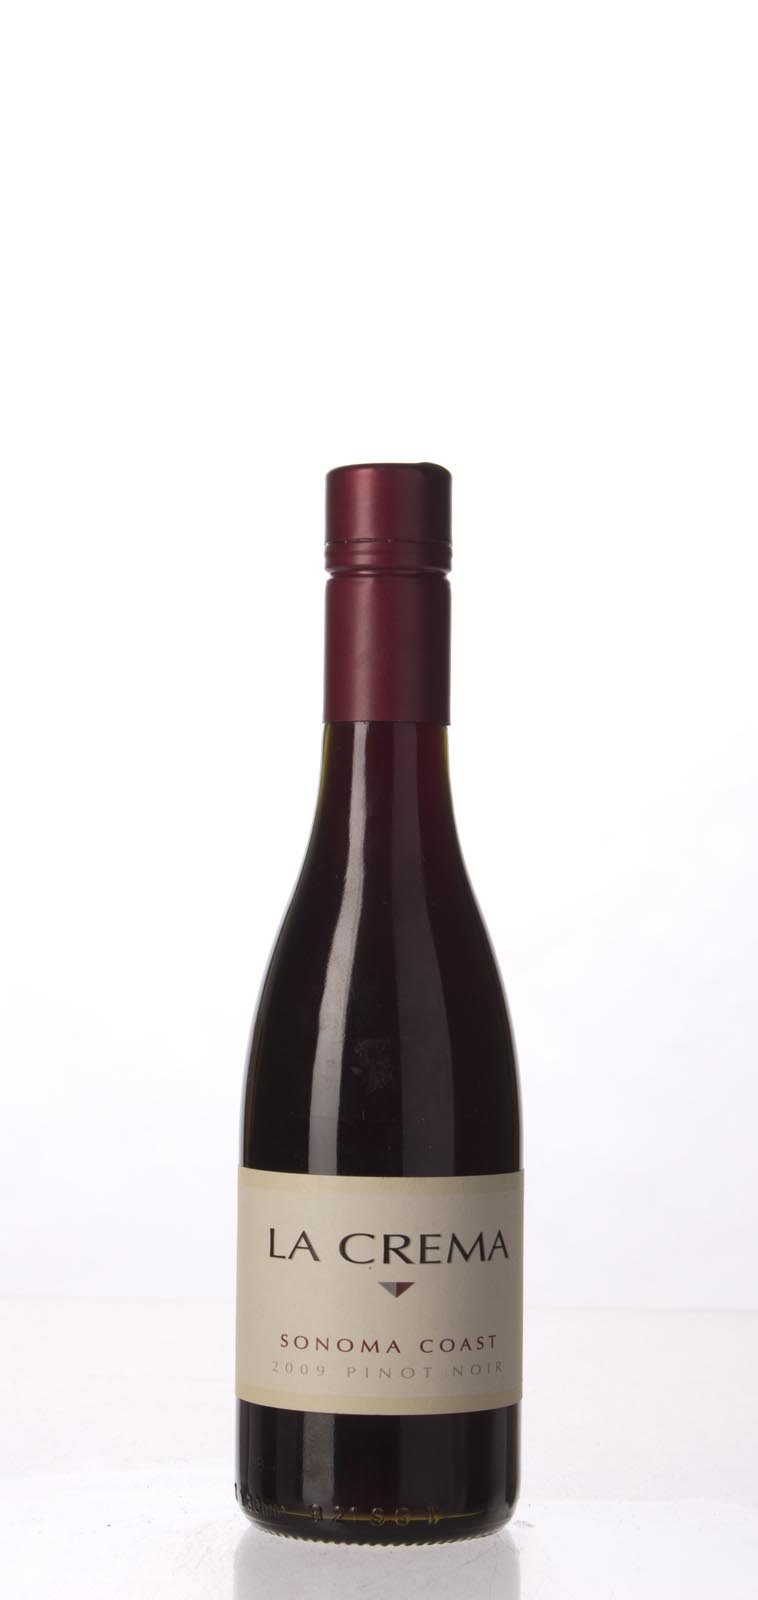 La Crema Pinot Noir Sonoma Coast 2009, 375mL (WA90) from The BPW - Merchants of rare and fine wines.